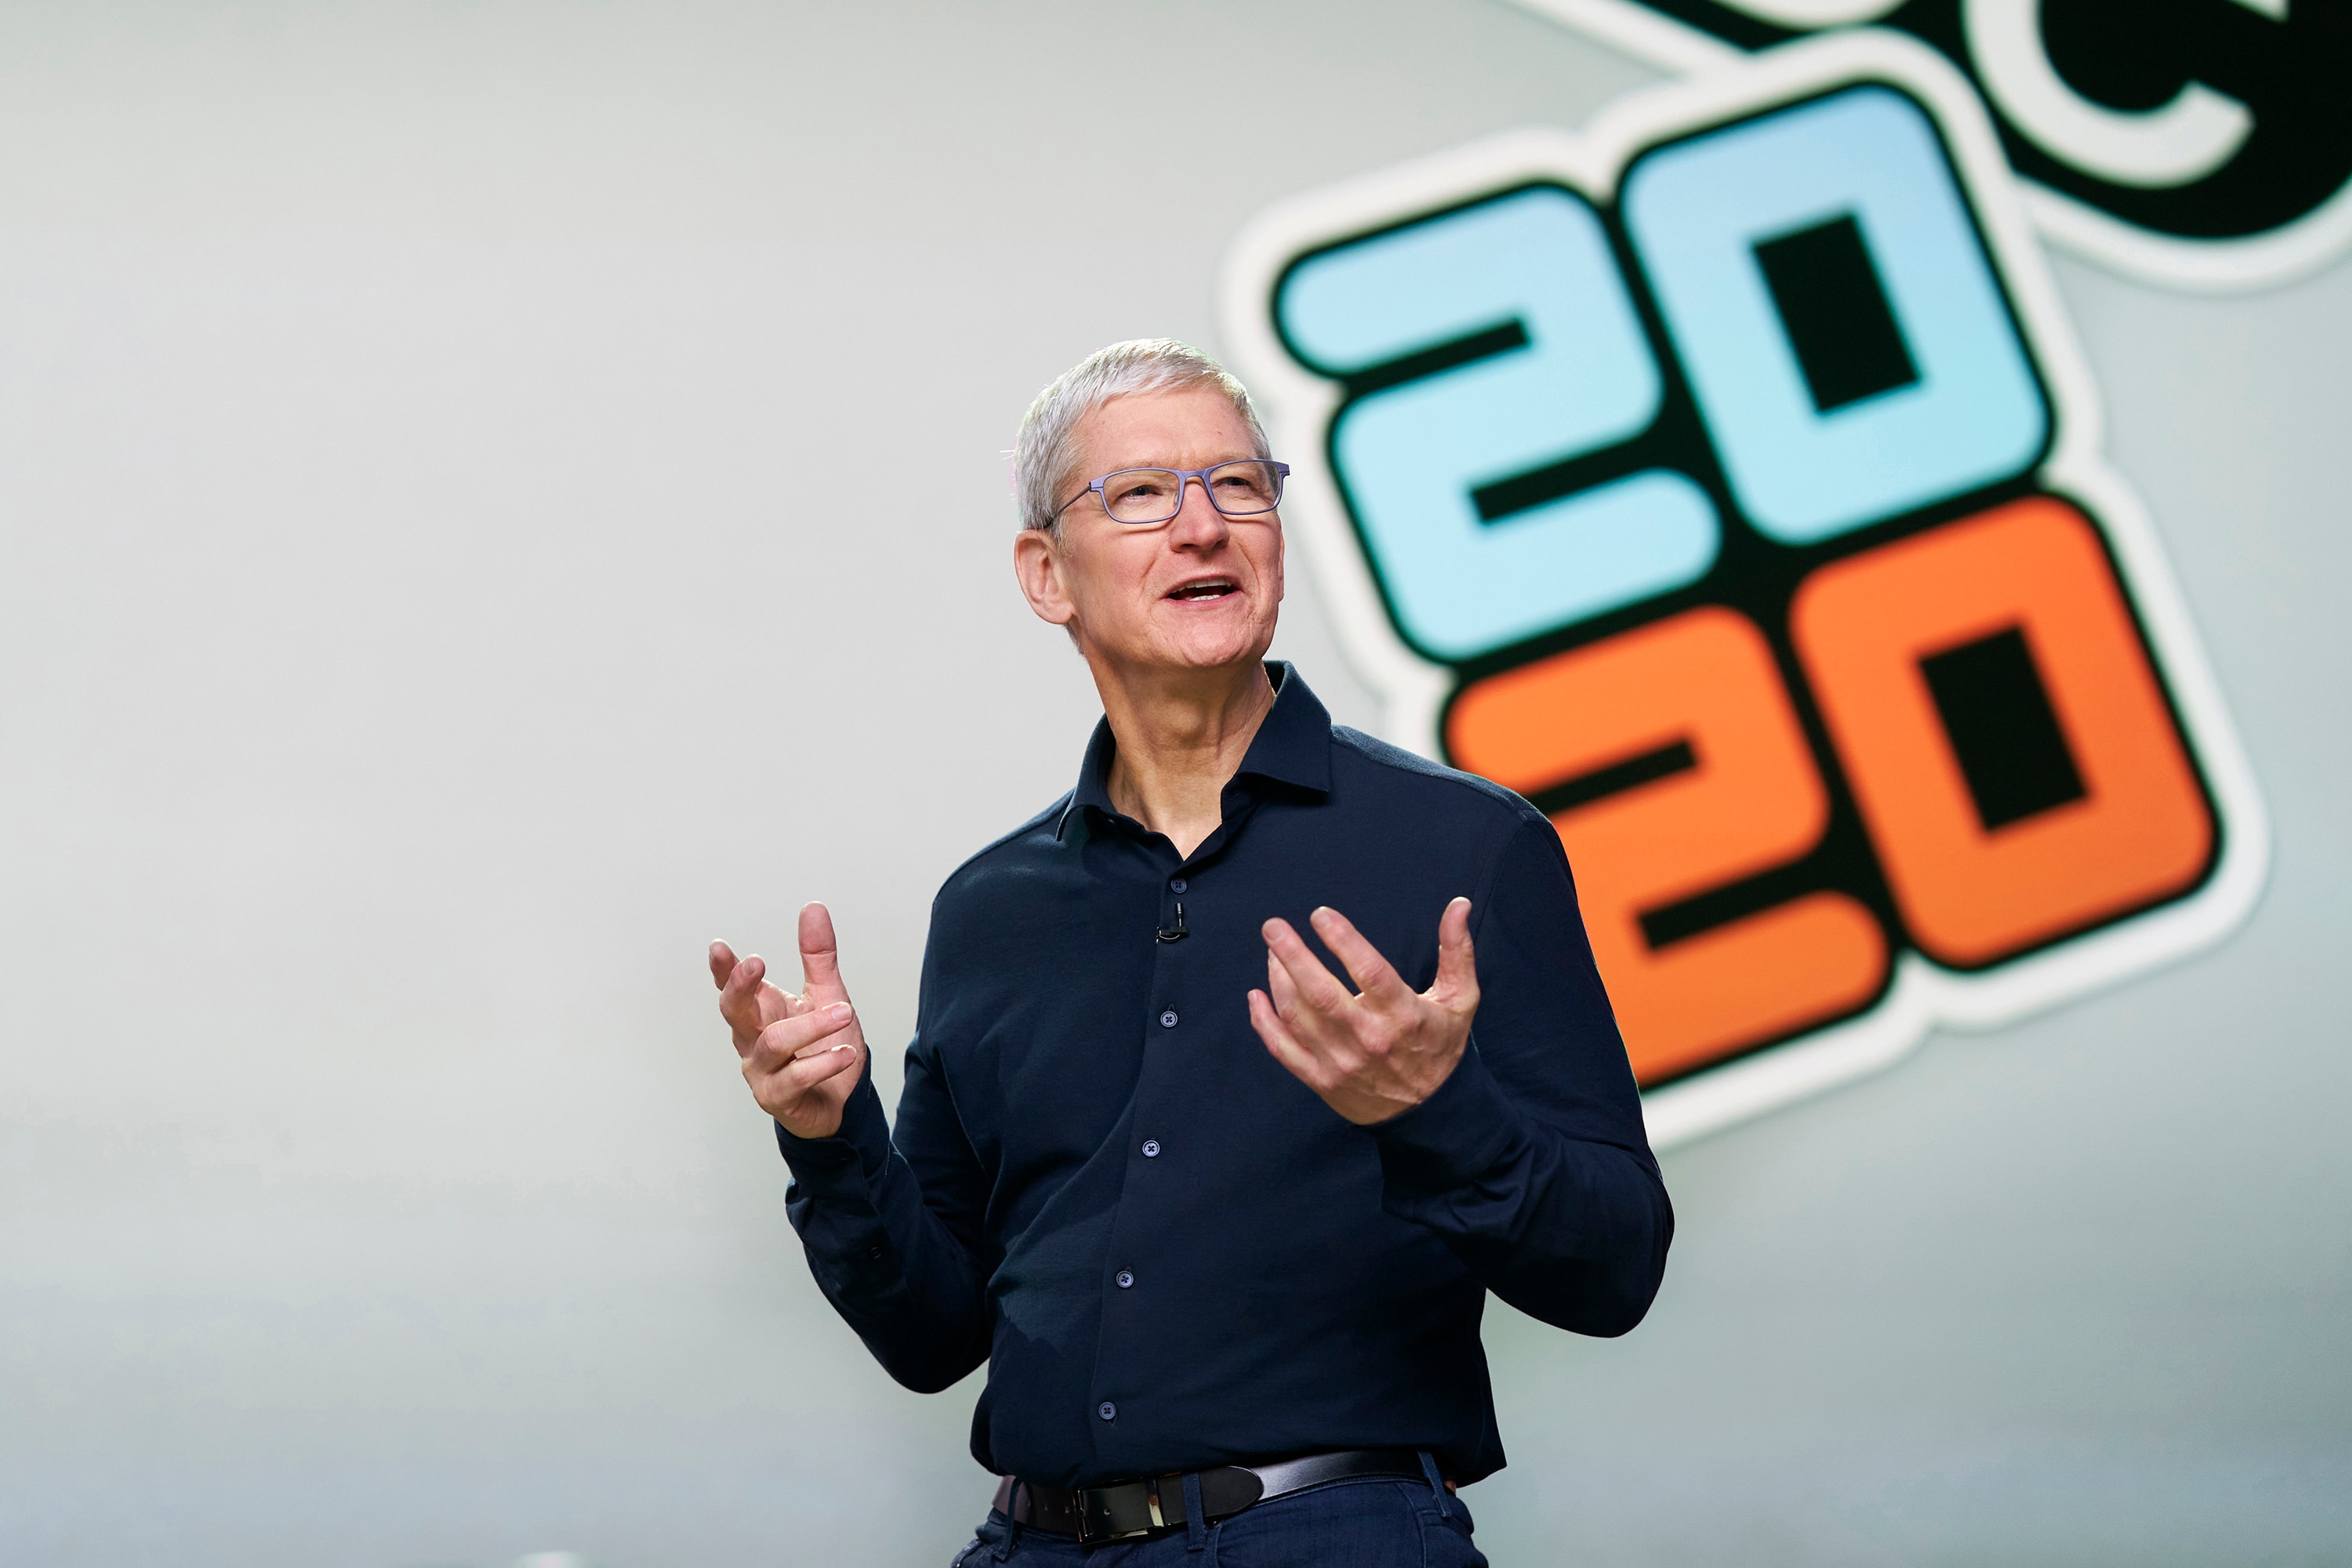 Apple on Monday provided a glimpse at upcoming software changes designed to make the iPhone even easier to use as people become ever more dependent on technology as they minimize personal contact during the worst pandemic in a century.